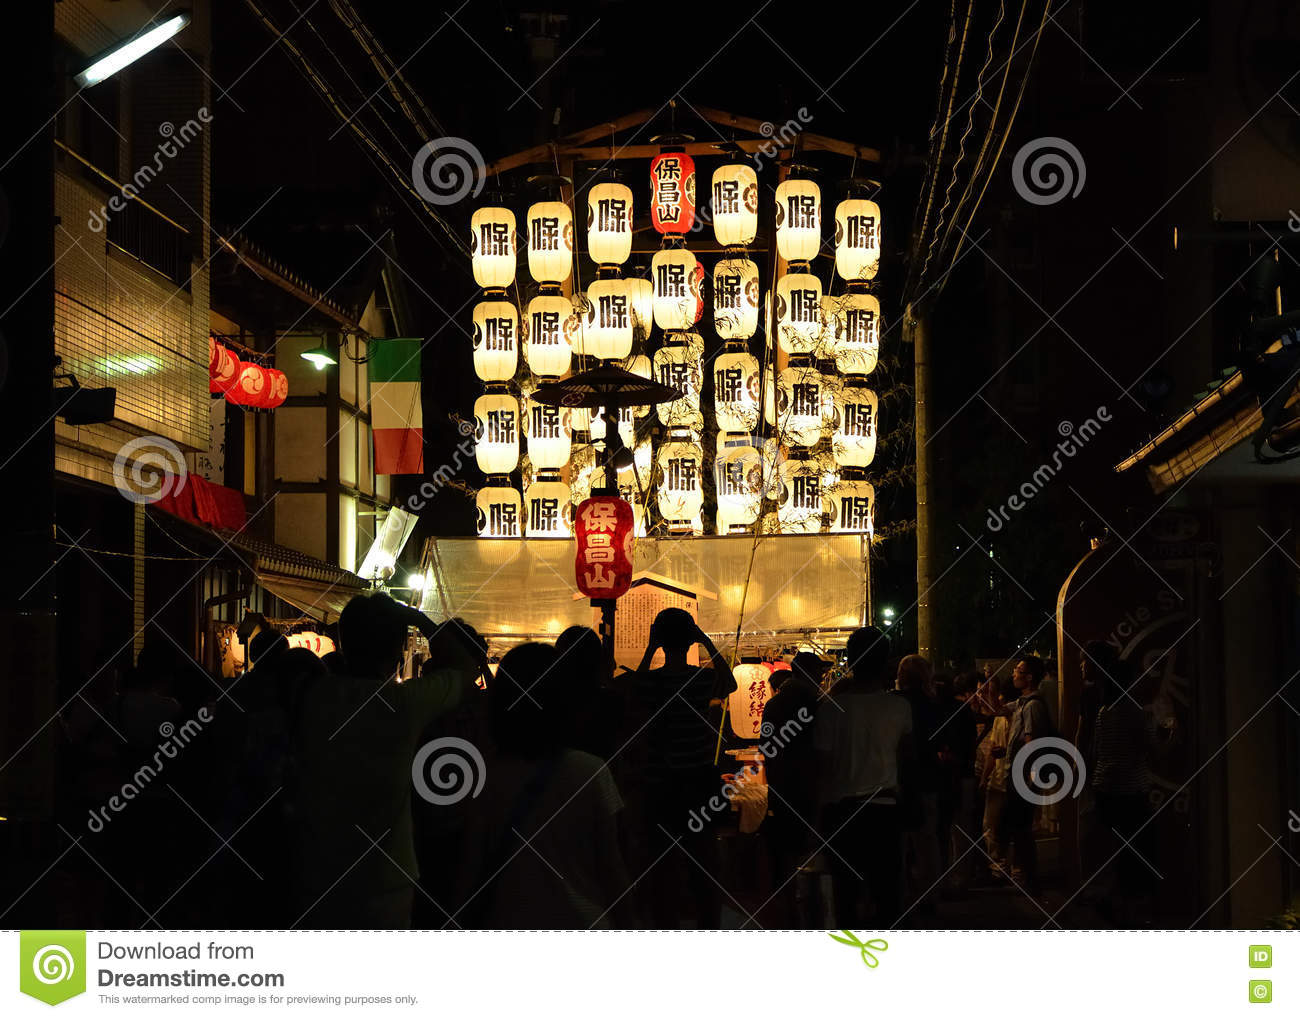 Lanterns of Gion festival, Kyoto Japan in July.